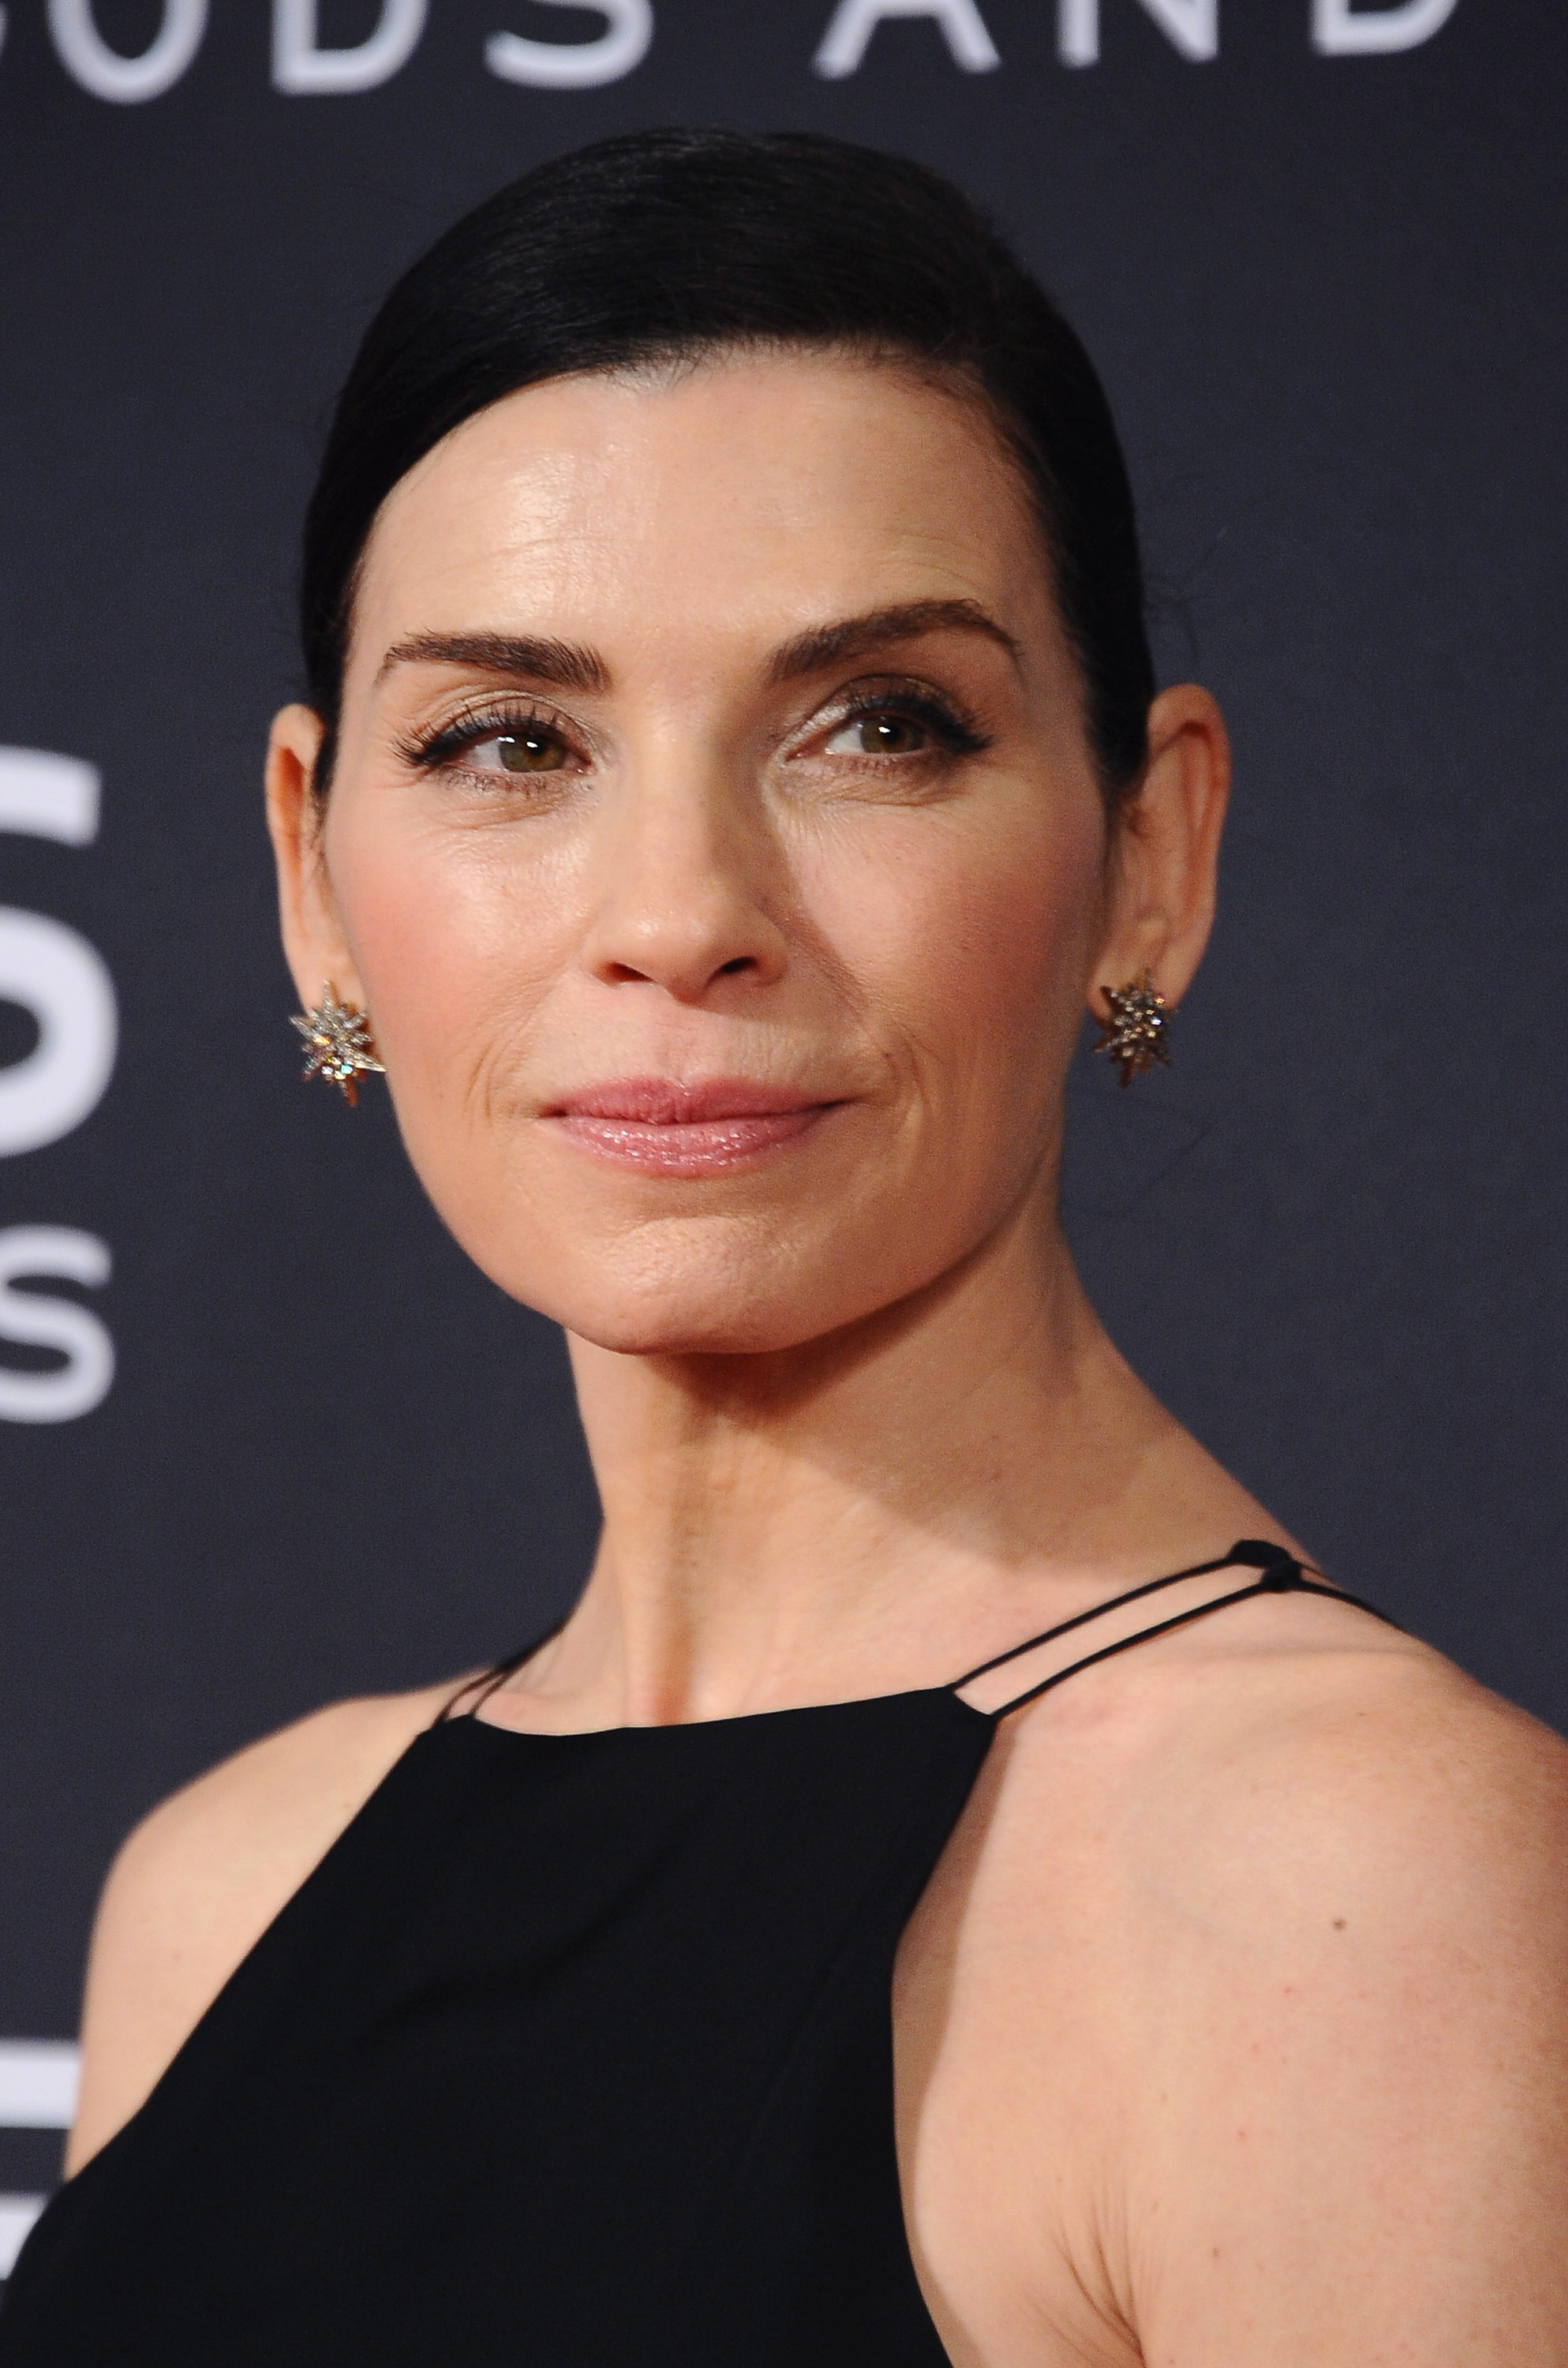 Actress Julianna Margulies attends the  Exodus: Gods And Kings  New York Premiere in New York City on Dec. 7, 2014.